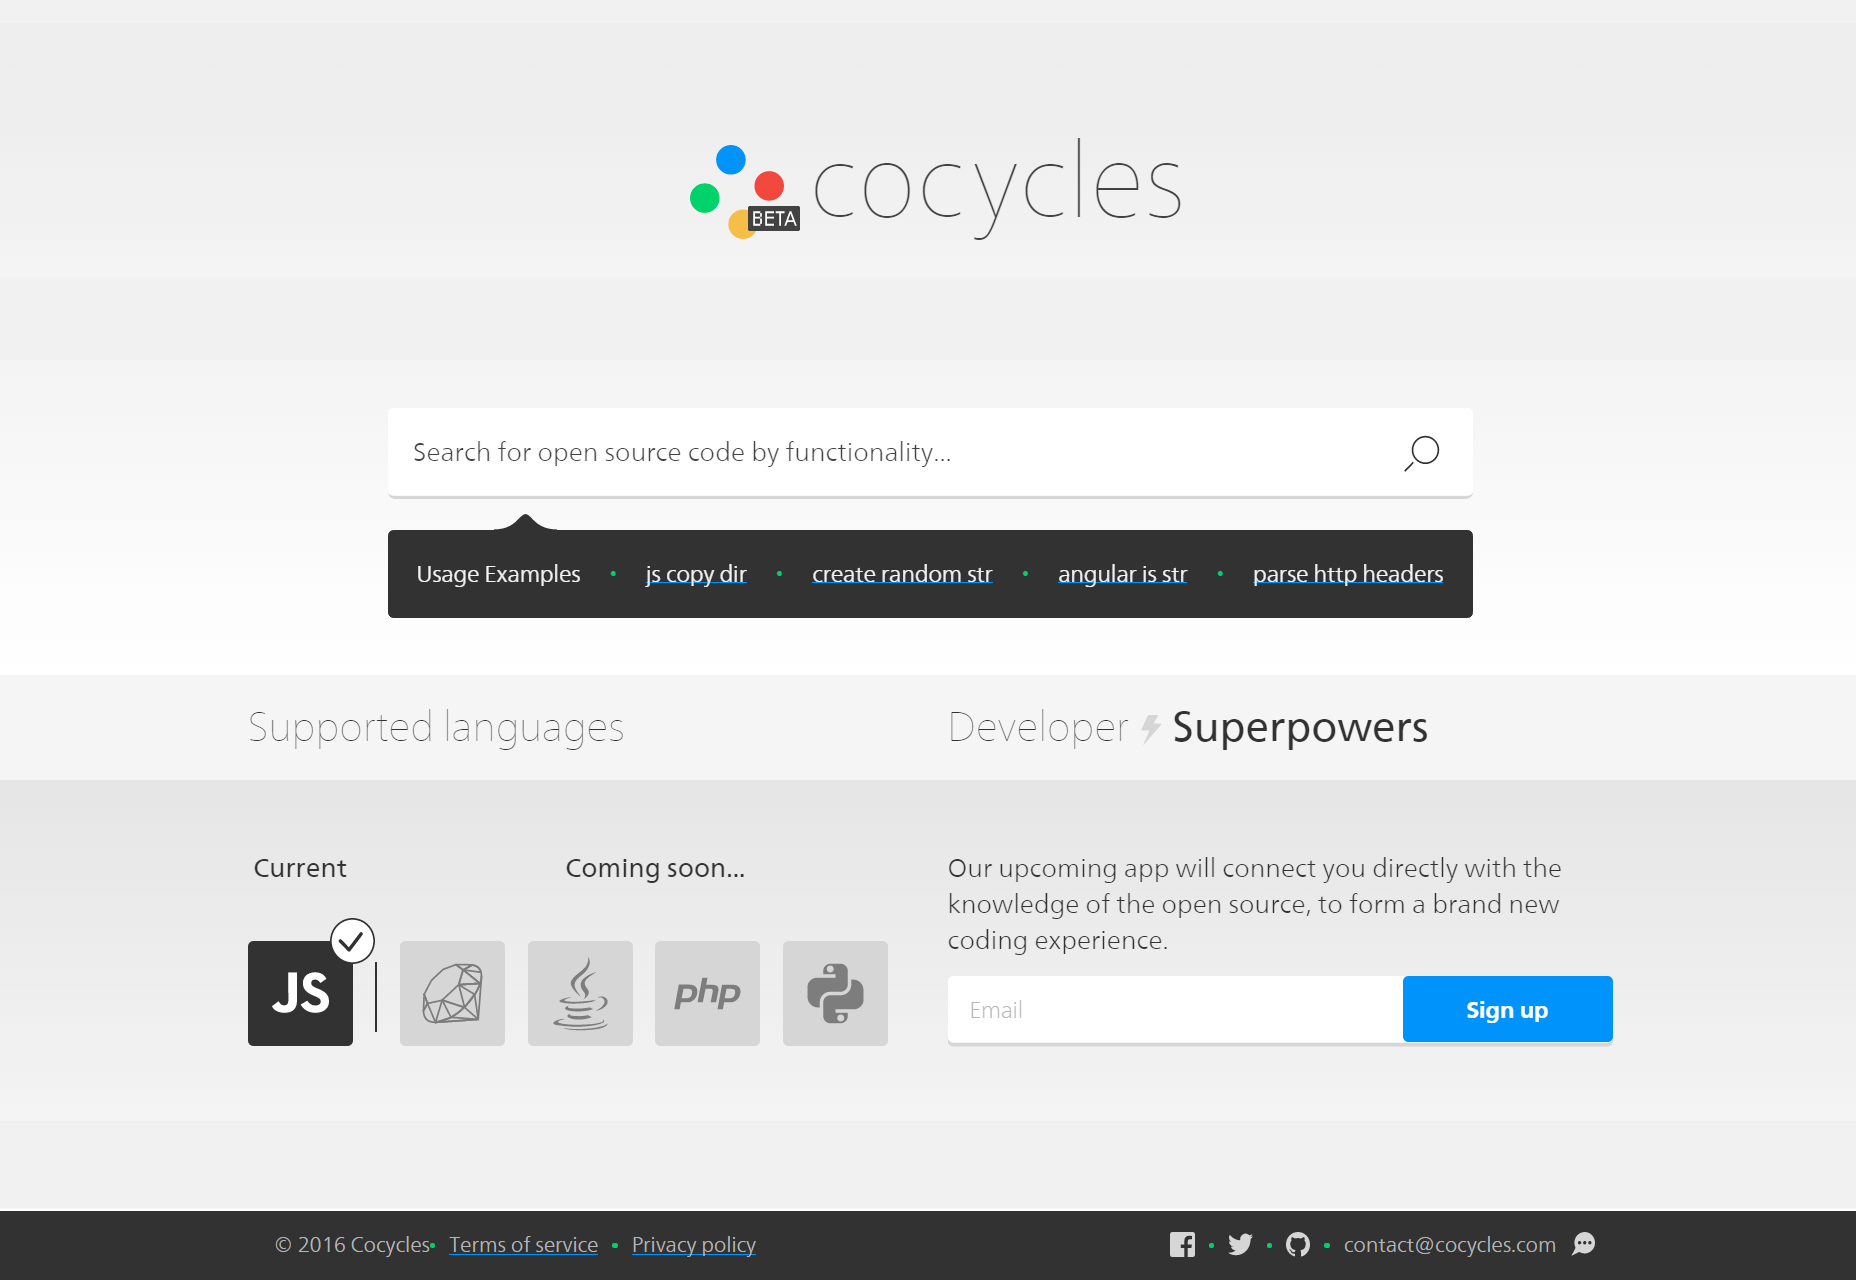 cocycles-functionality-code-search